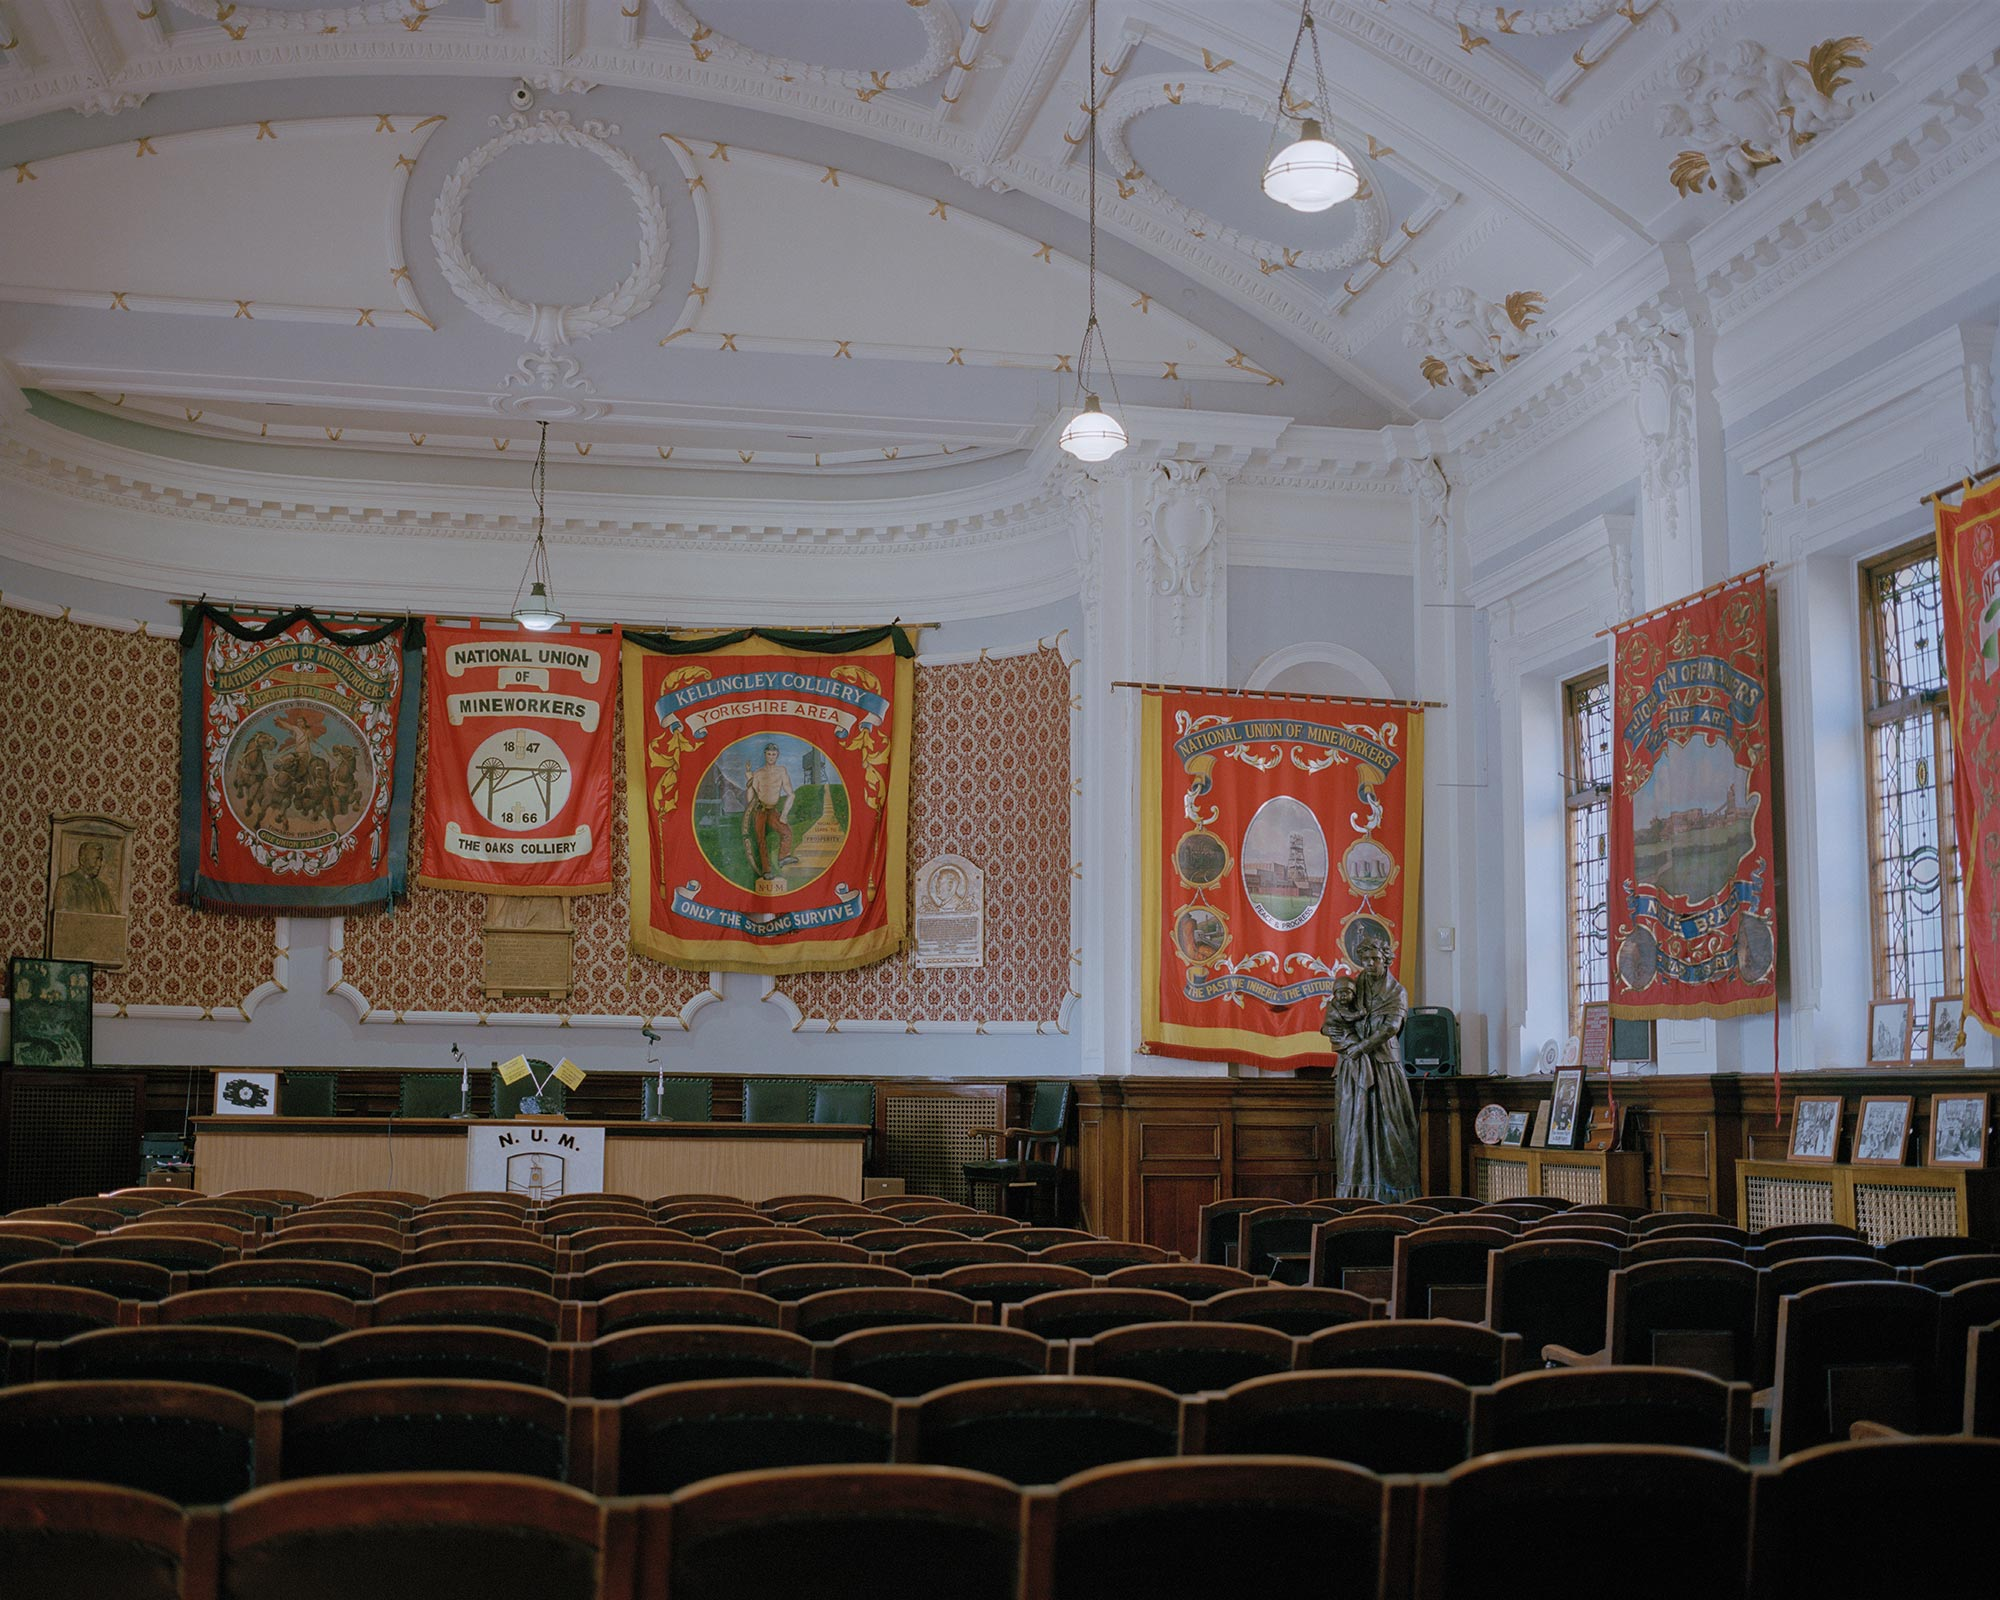 Area banners inside the National Union of Mineworkers headquarters, Barnsley, South Yorkshire.